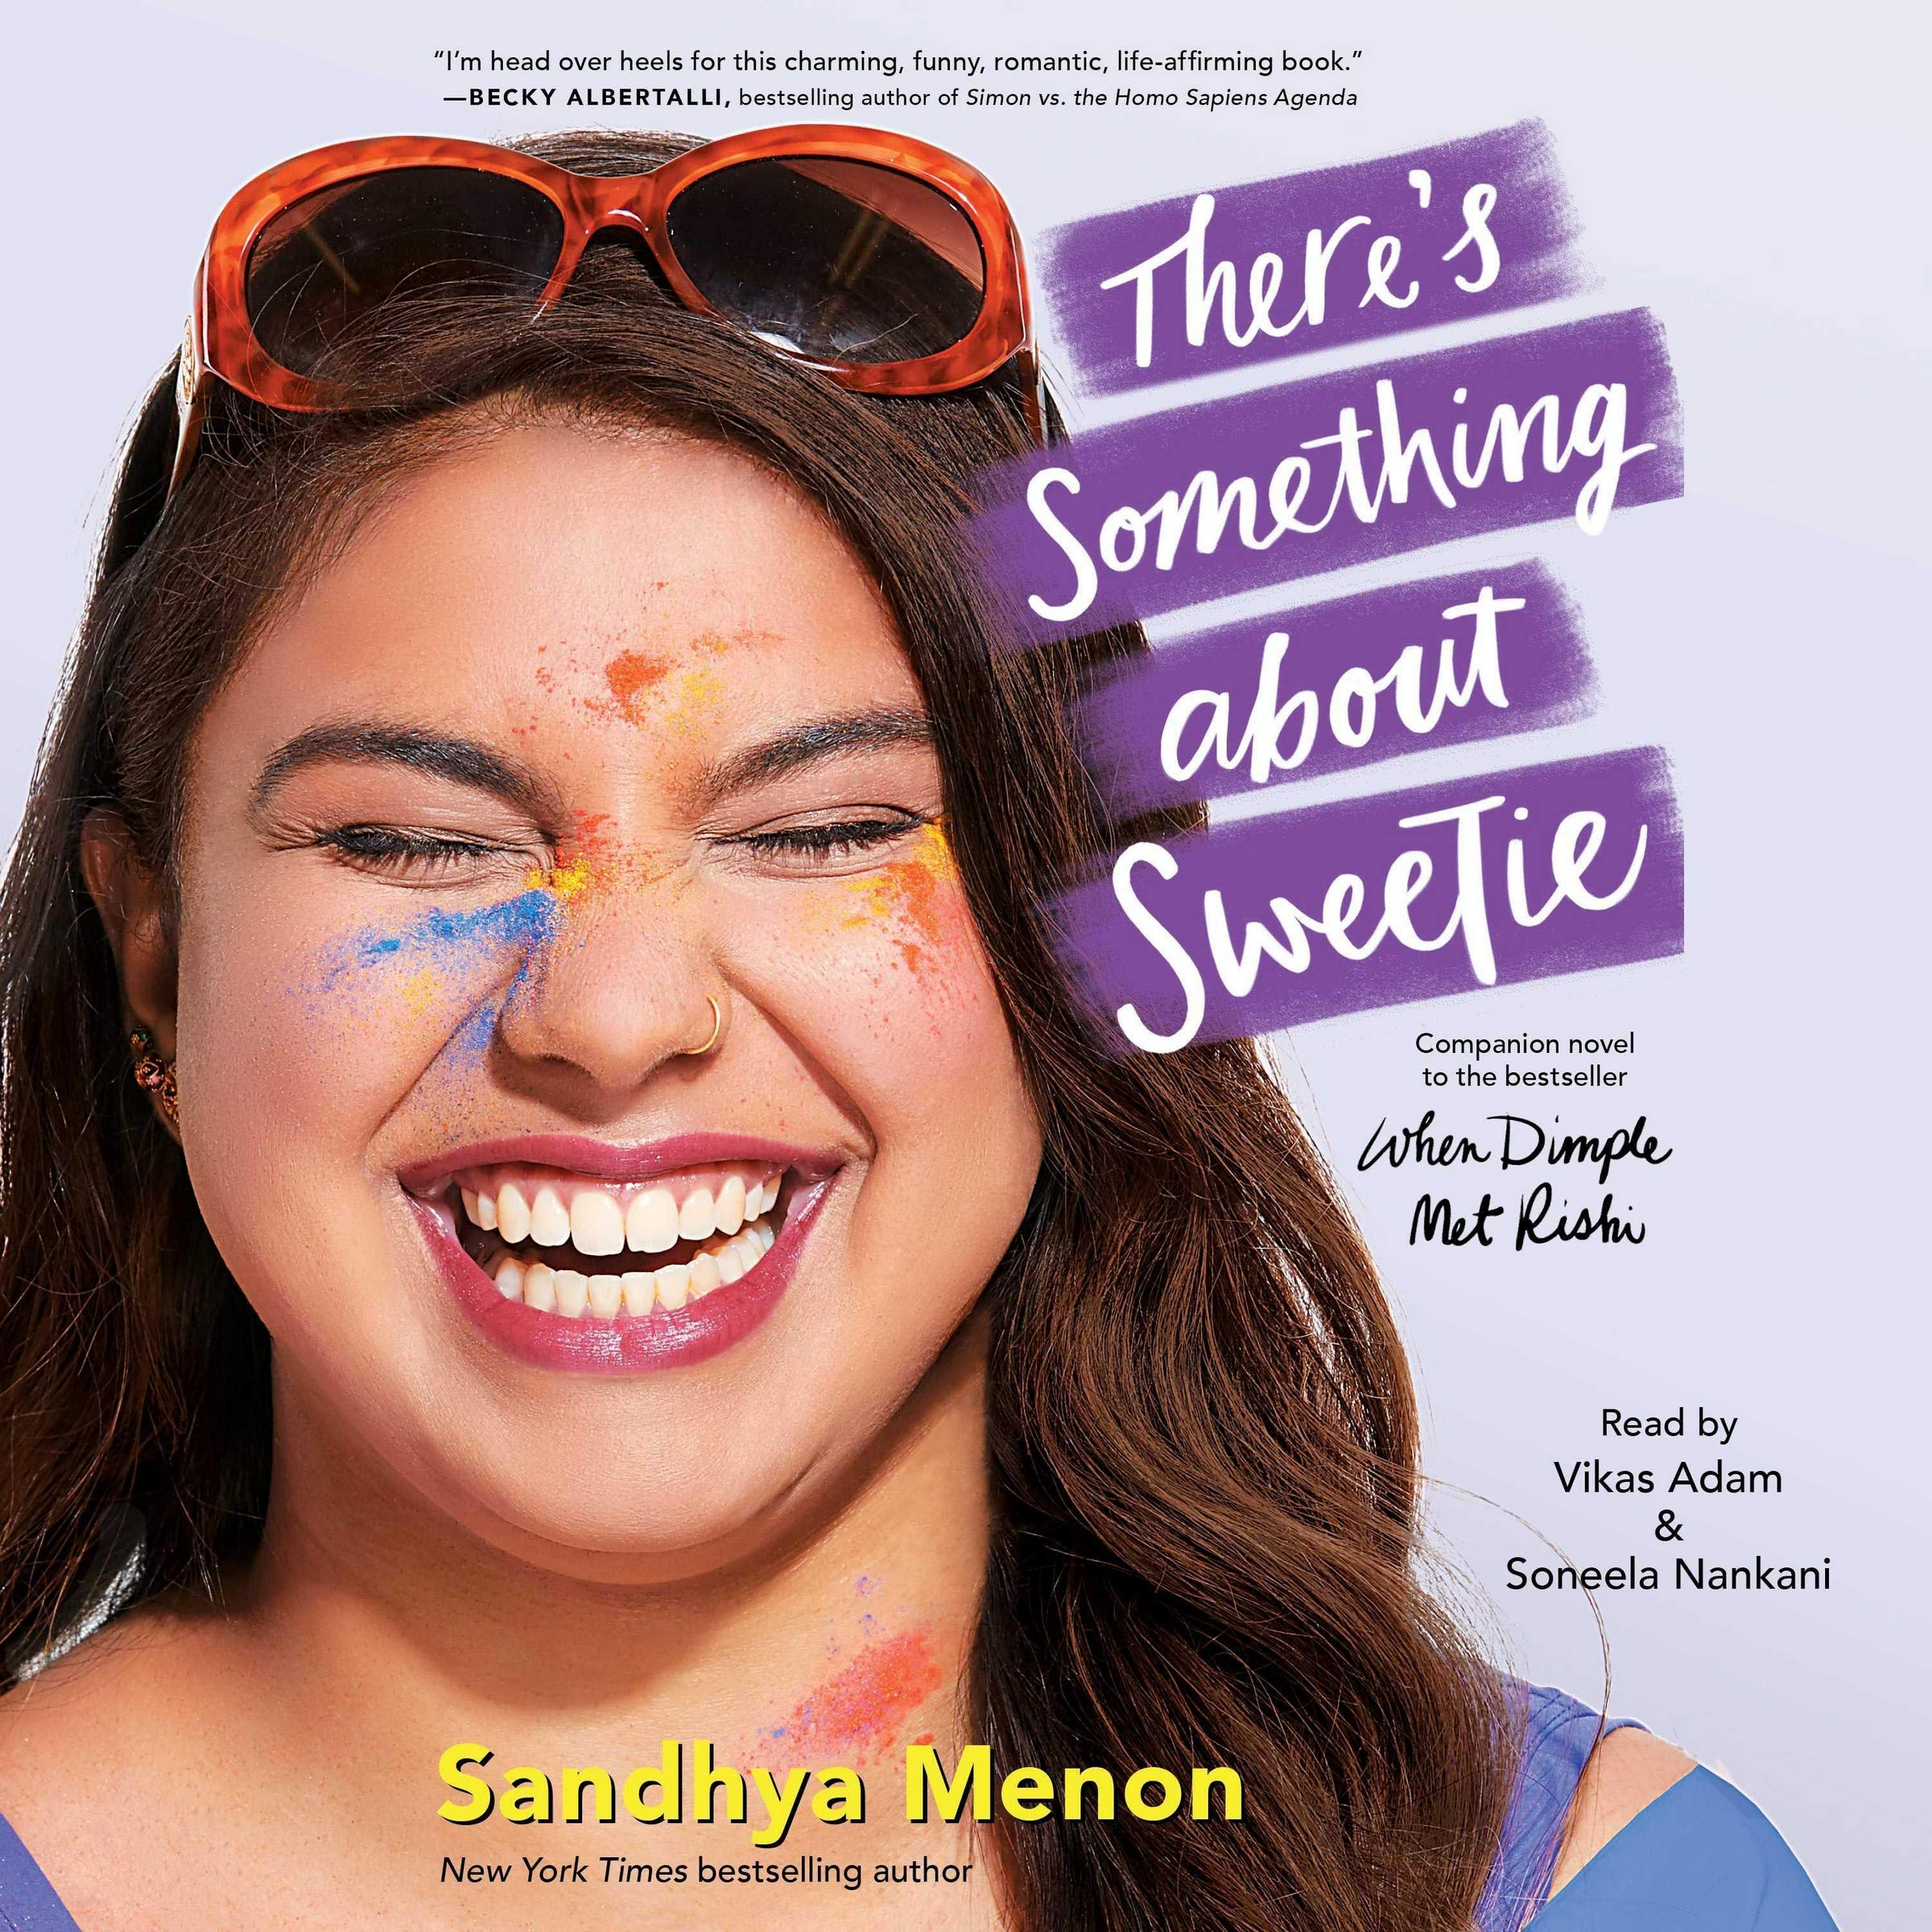 Amazon.com: Theres Something About Sweetie (9781508294924 ...